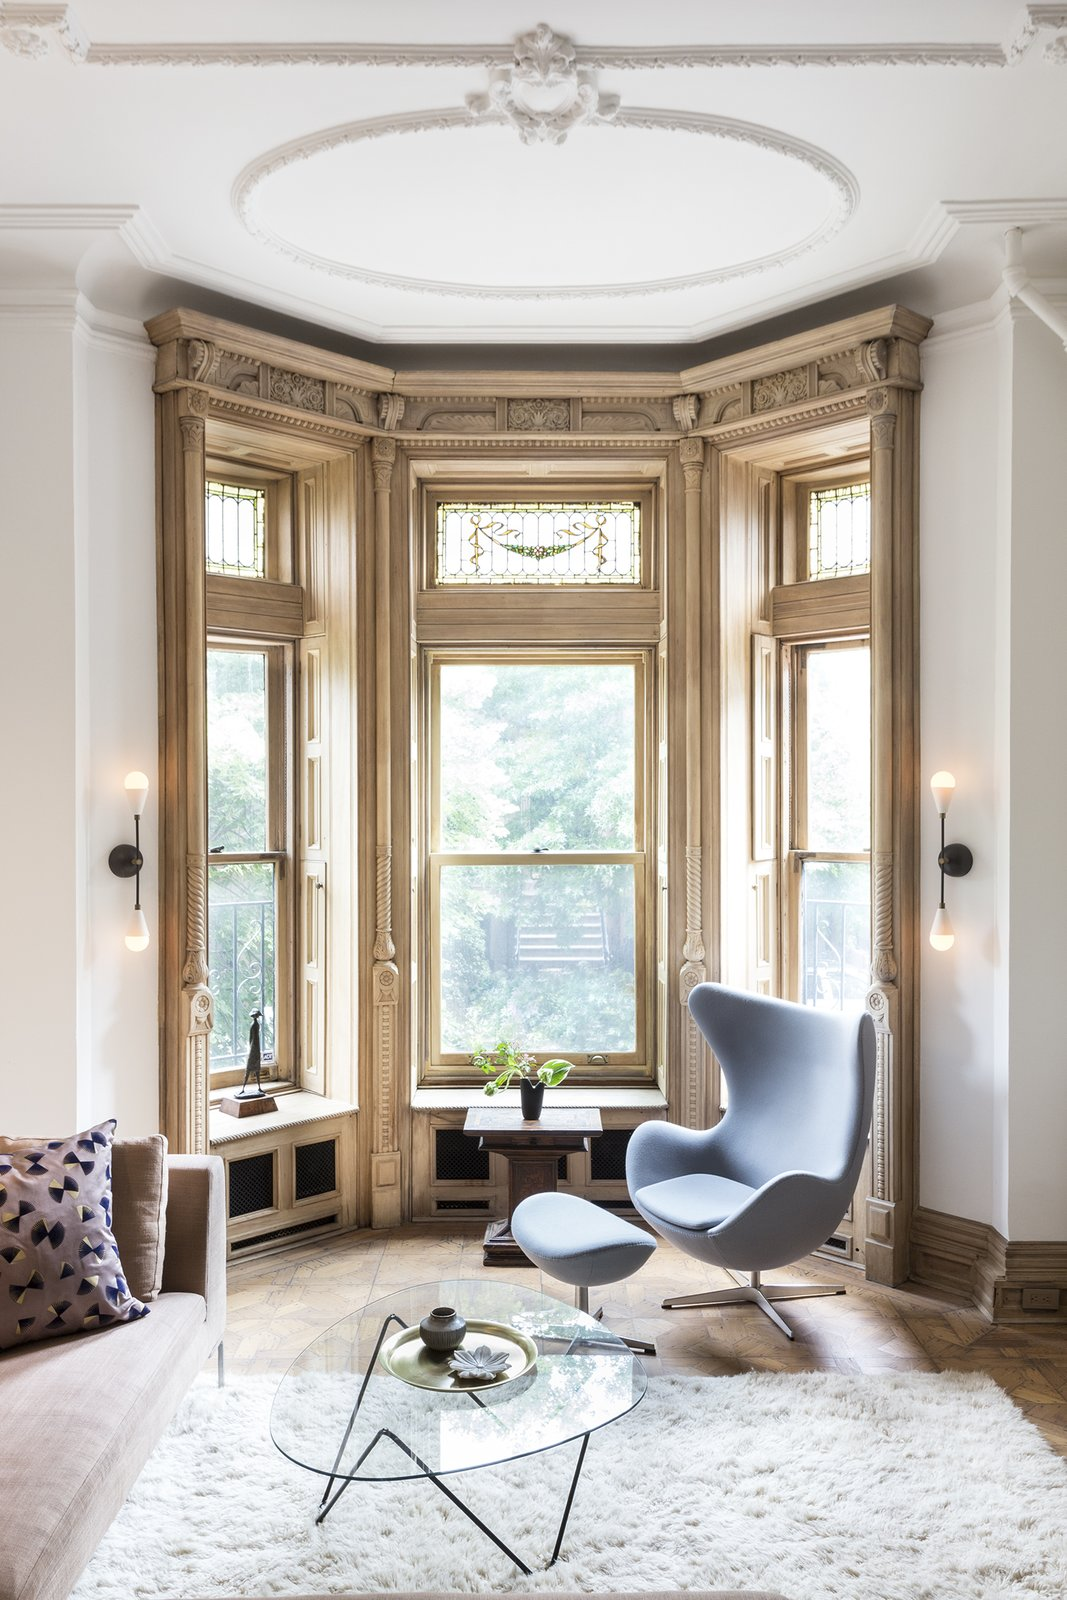 A brownstone in Brooklyn, New York was renovated by interior designer Kiki Dennis, complete with a full restoration of the wood window framing and decorative moldings. As much original fabric was retained as possible.  Photo 8 of 10 in How to Save Historic Windows on an Existing Property